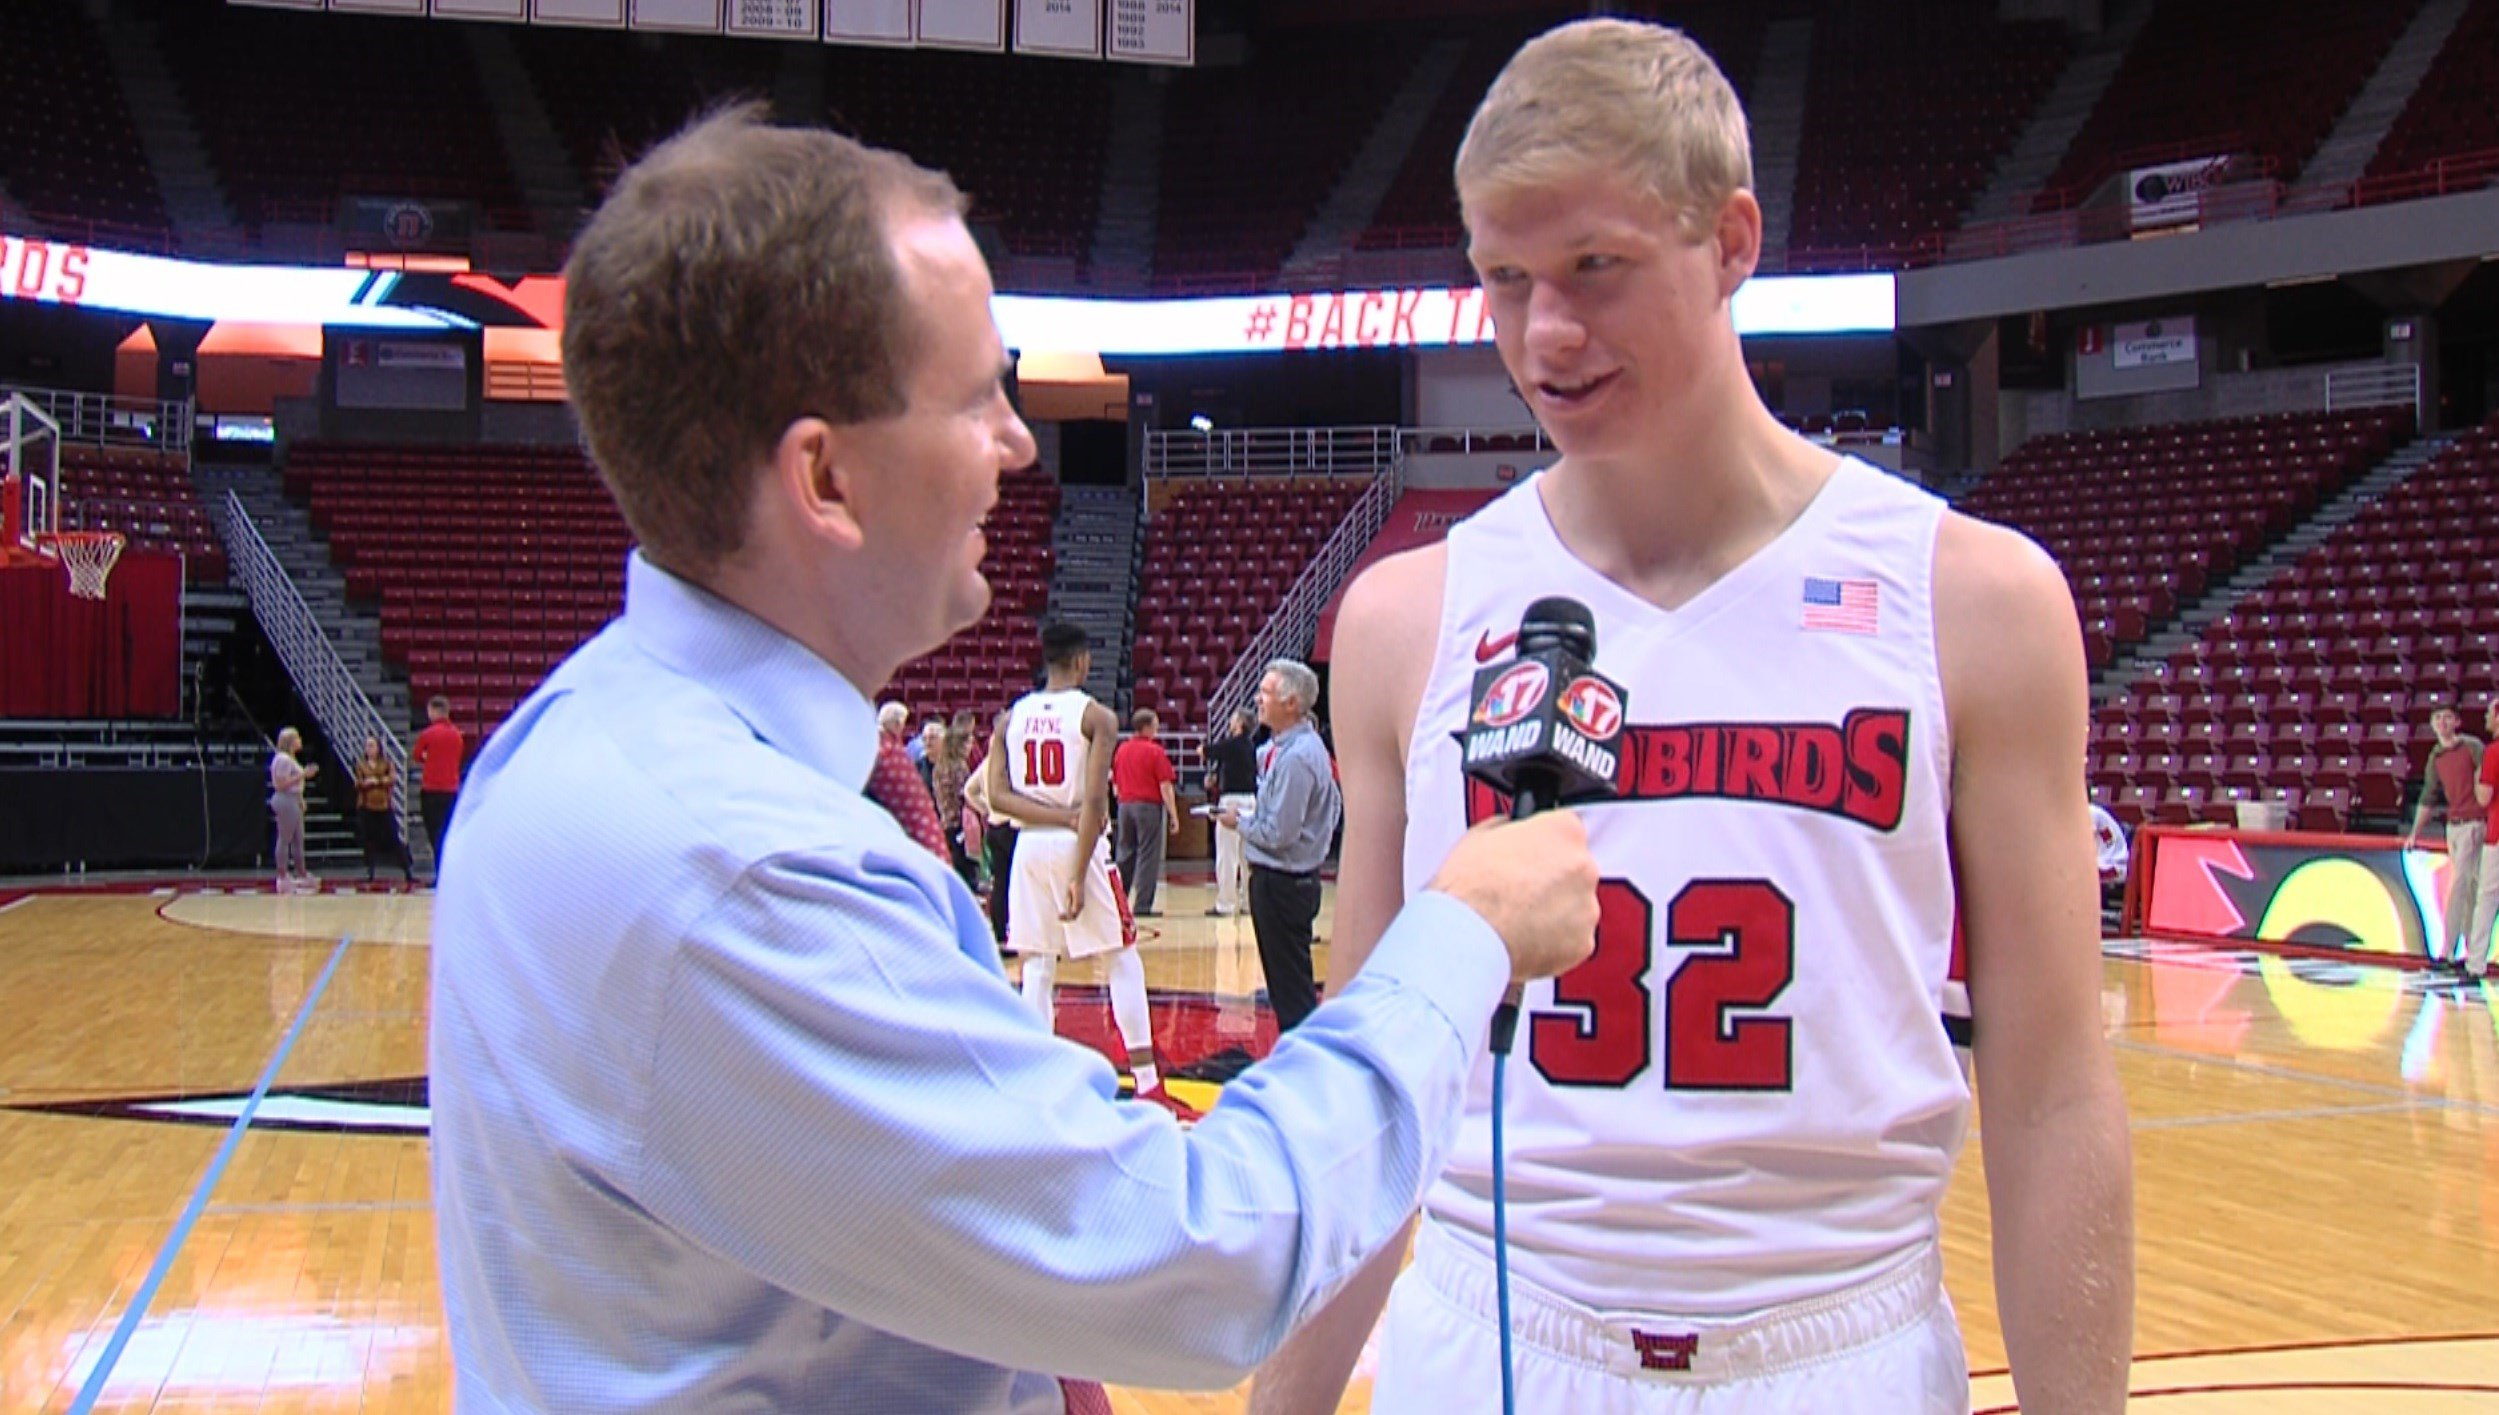 Illinois State freshman Taylor Bruninga (Mapleton, Ill.) posted 9 points and 8 rebounds in 27 minutes in the Redbirds' exhibition win over Lewis on Sunday evening.